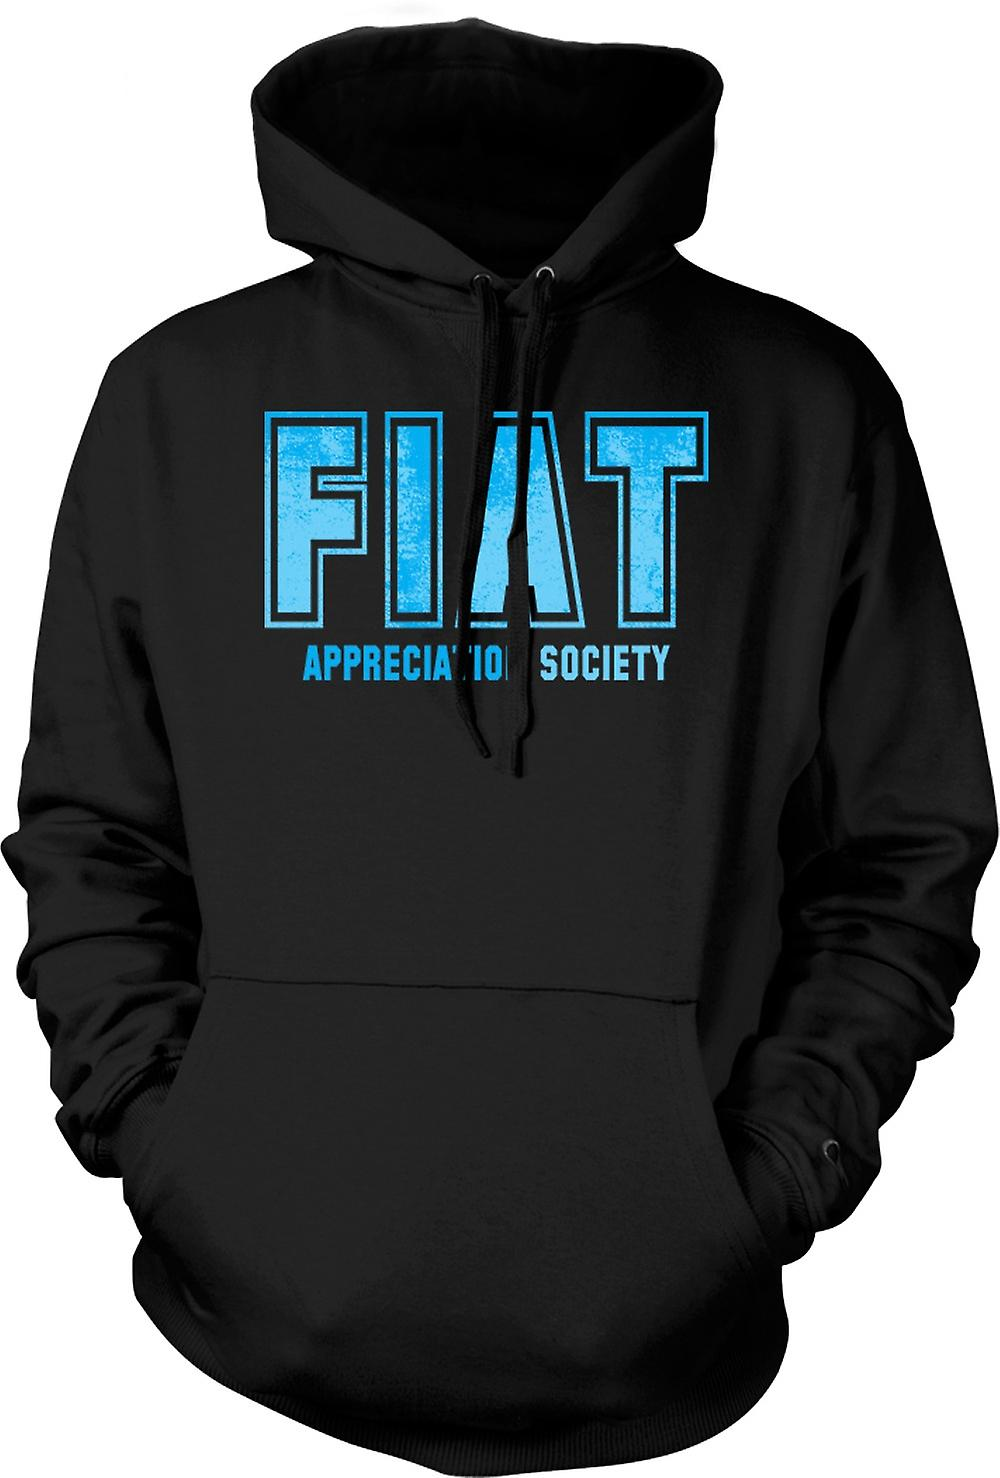 Mens Hoodie - Fiat Appreciation Society